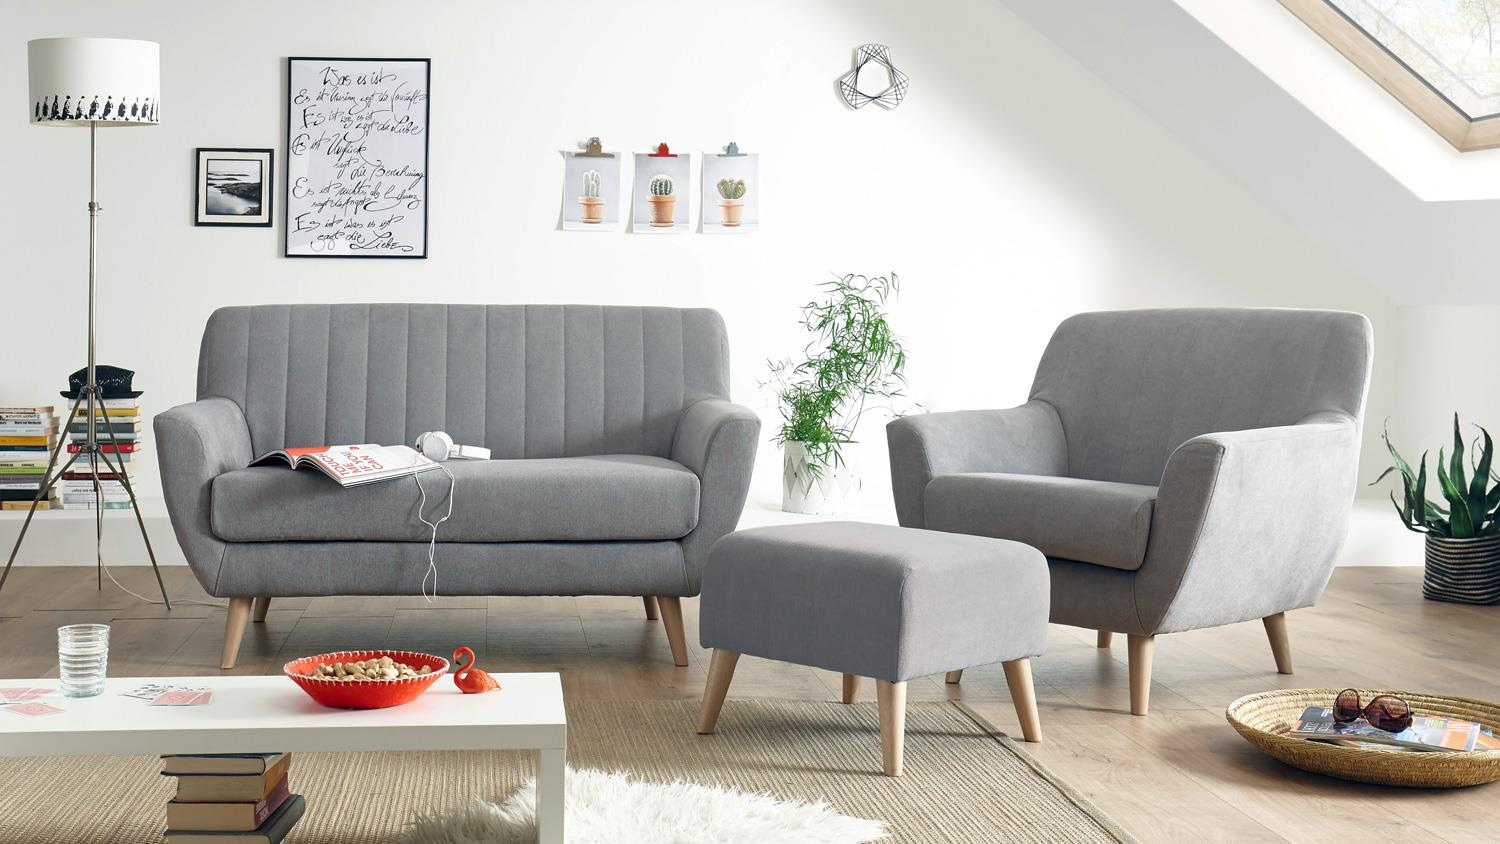 Sofa Garnitur 2 Teilig Sofa Garnitur 2 Teilig Good Excellent Cheap U With Couch